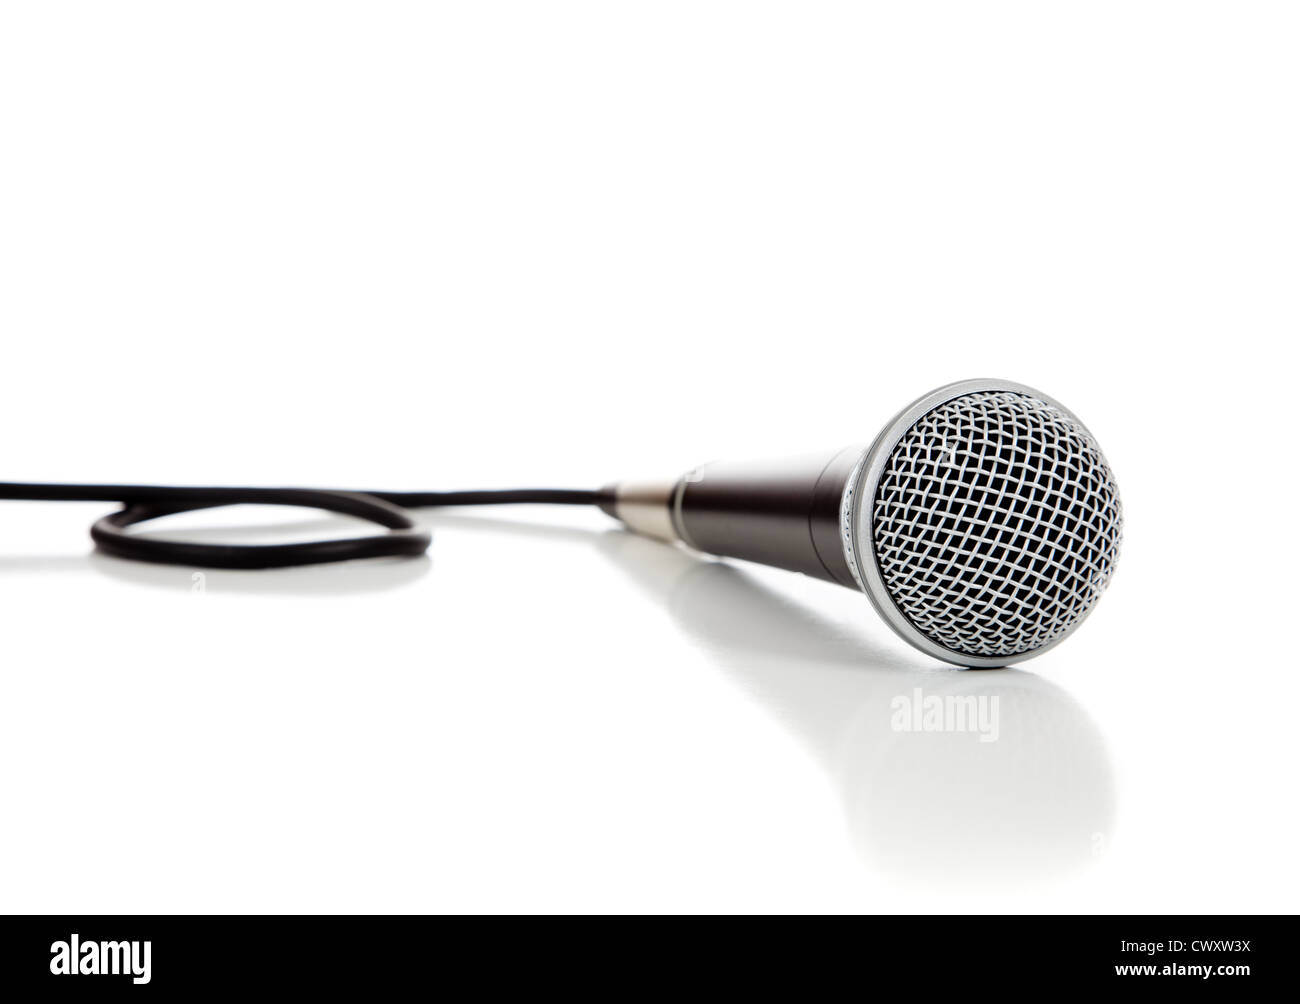 A black and silver mic on a white background - Stock Image